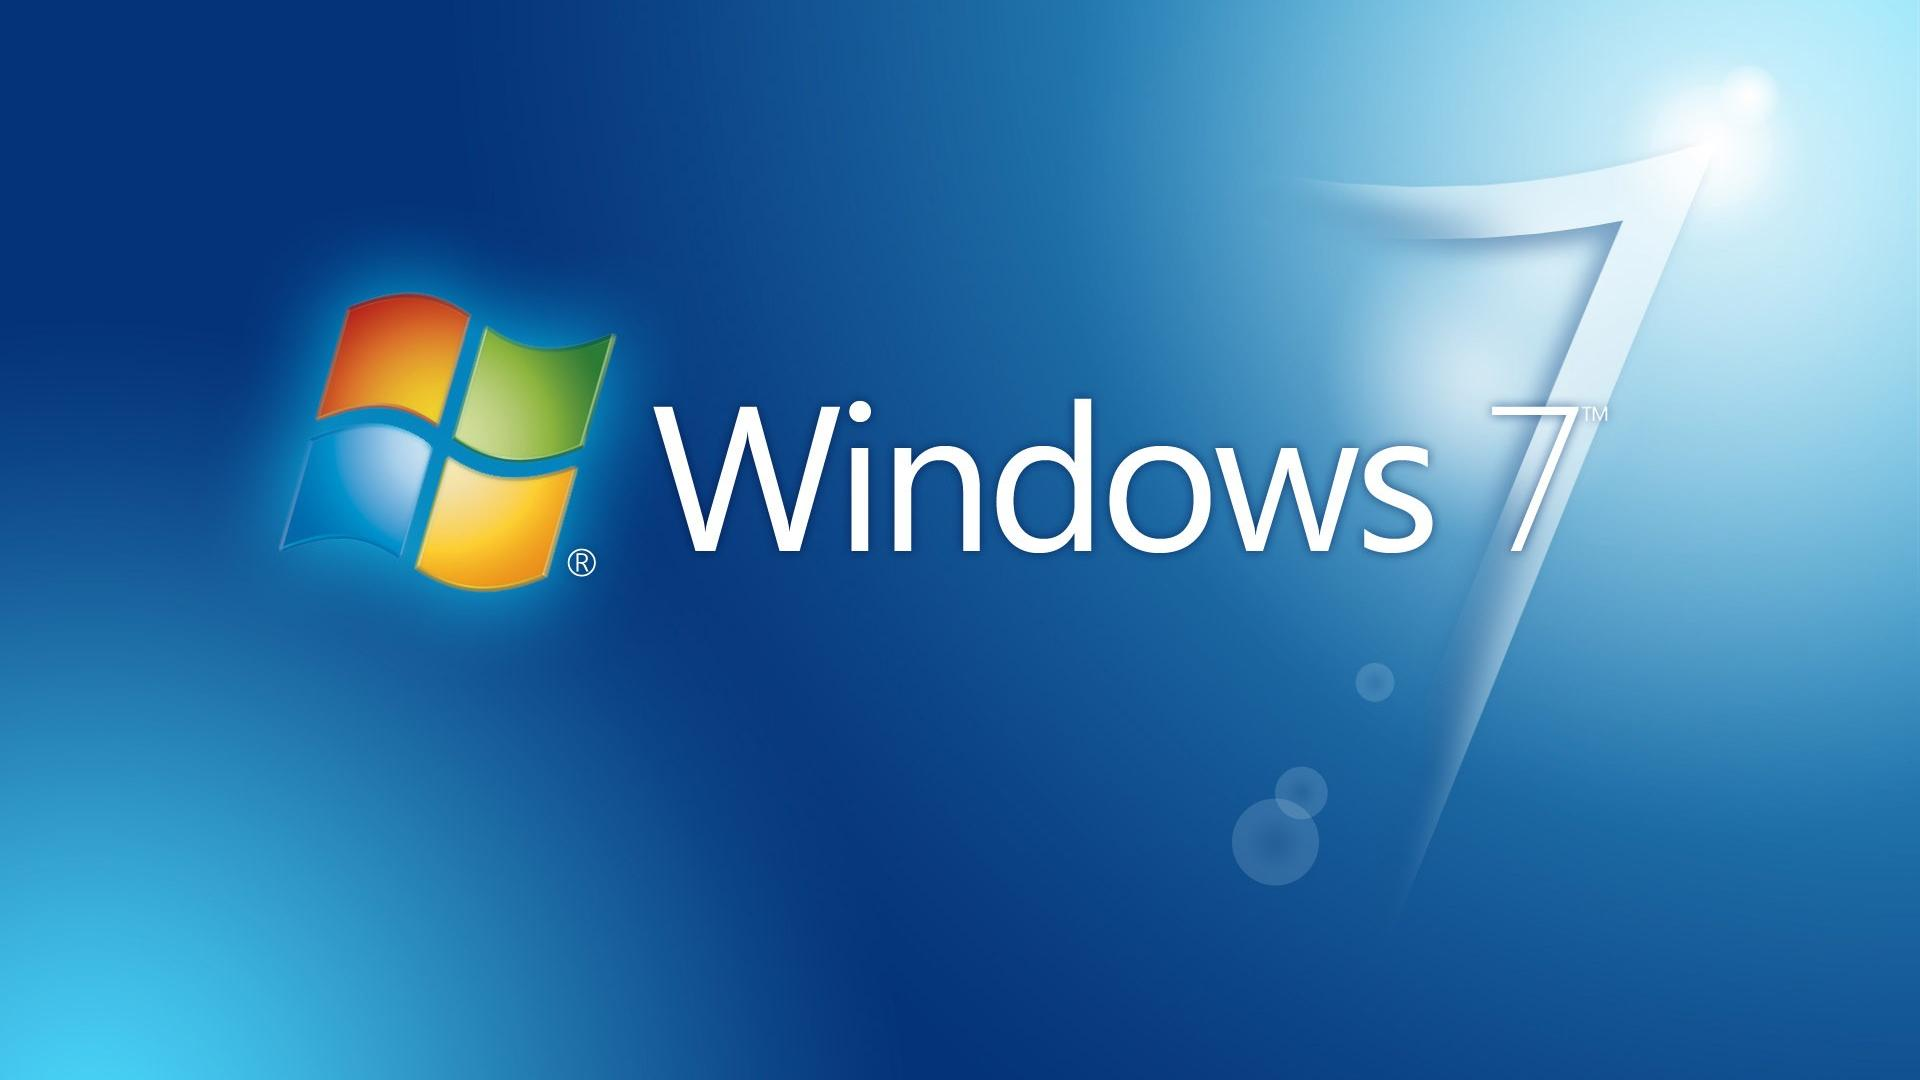 Windows 7 default backgrounds   SF Wallpaper 1920x1080